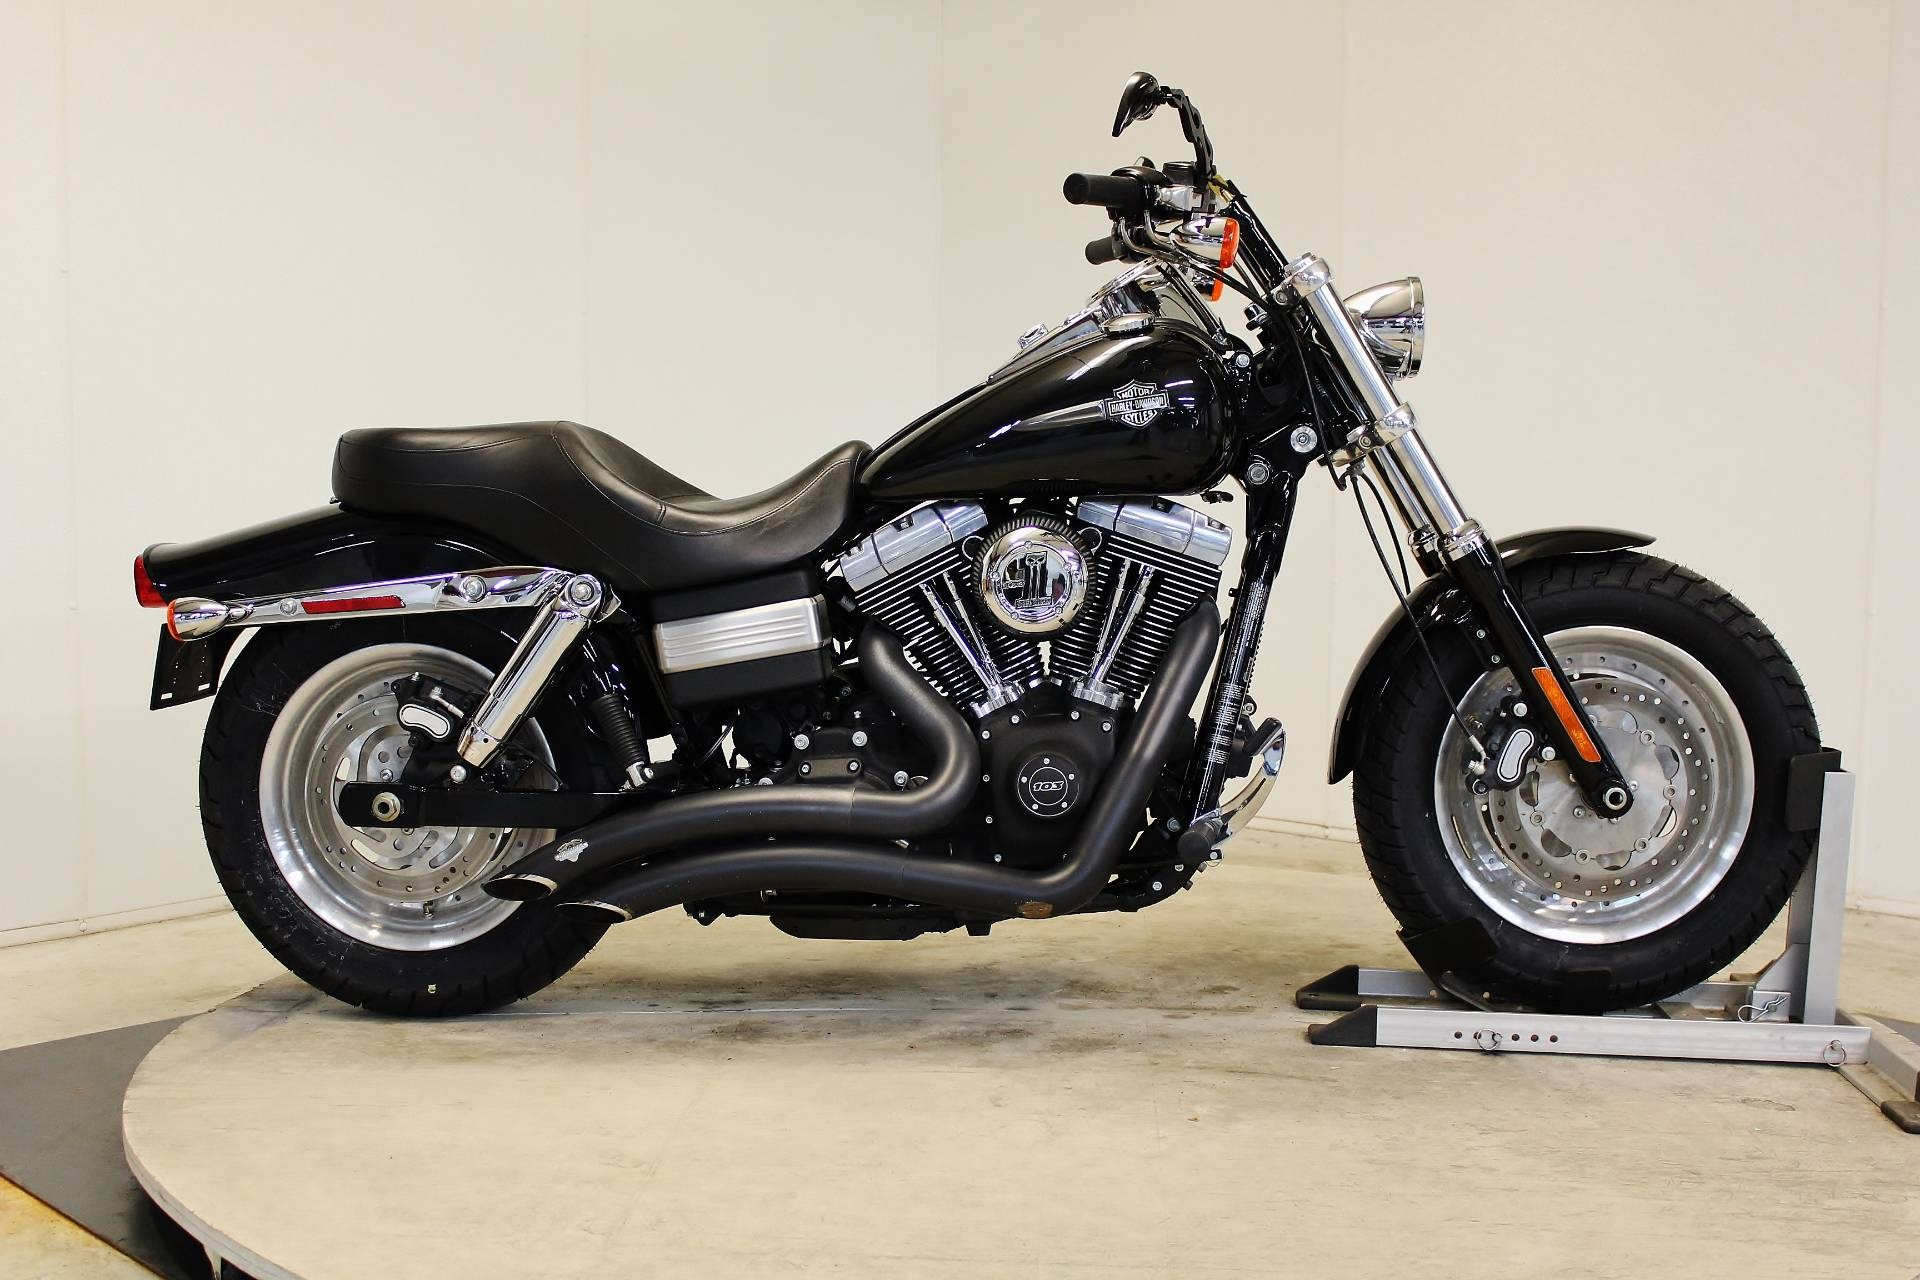 2013 harley davidson fxdf dyna fat bob midnight pearl pittsfield massachusetts 738395. Black Bedroom Furniture Sets. Home Design Ideas